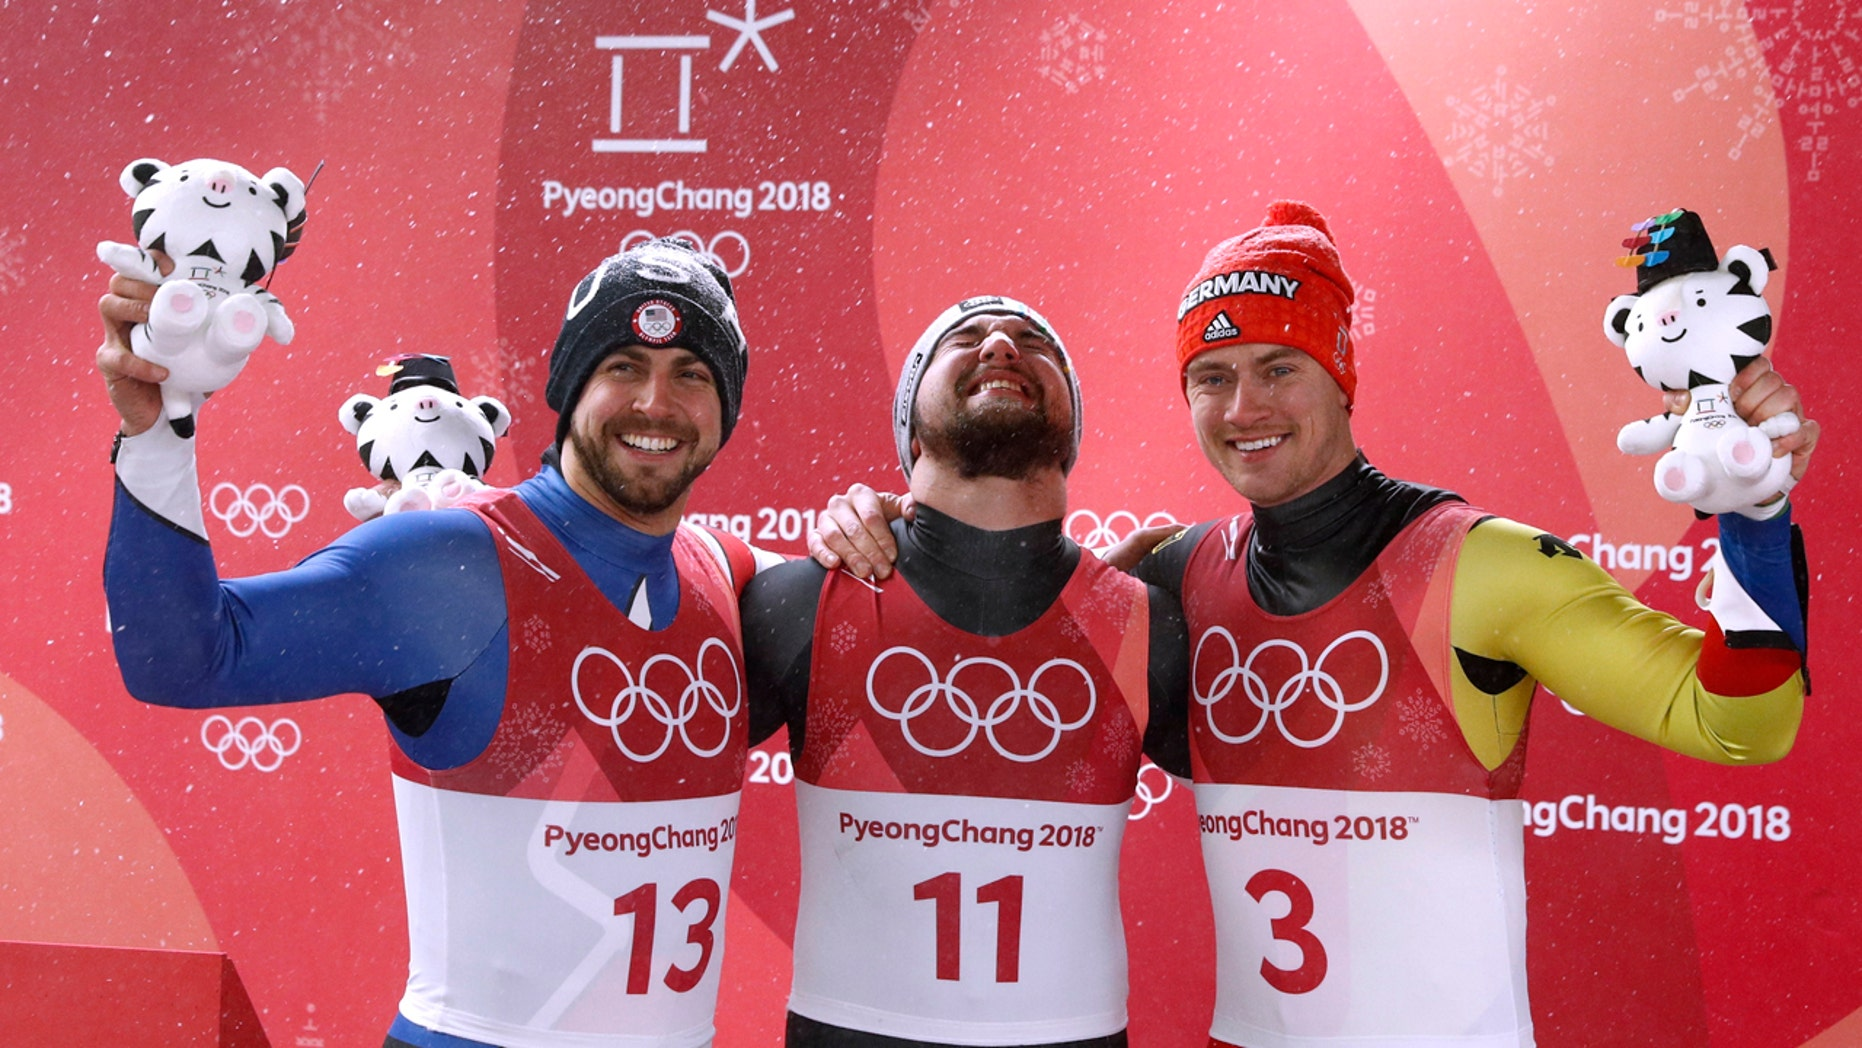 David Gleirscher of Austria, center, celebrates his men's singles luge win with 2nd-place Chris Mazdzer of the U.S. and 3rd-place Johannes Ludwig of Germany.